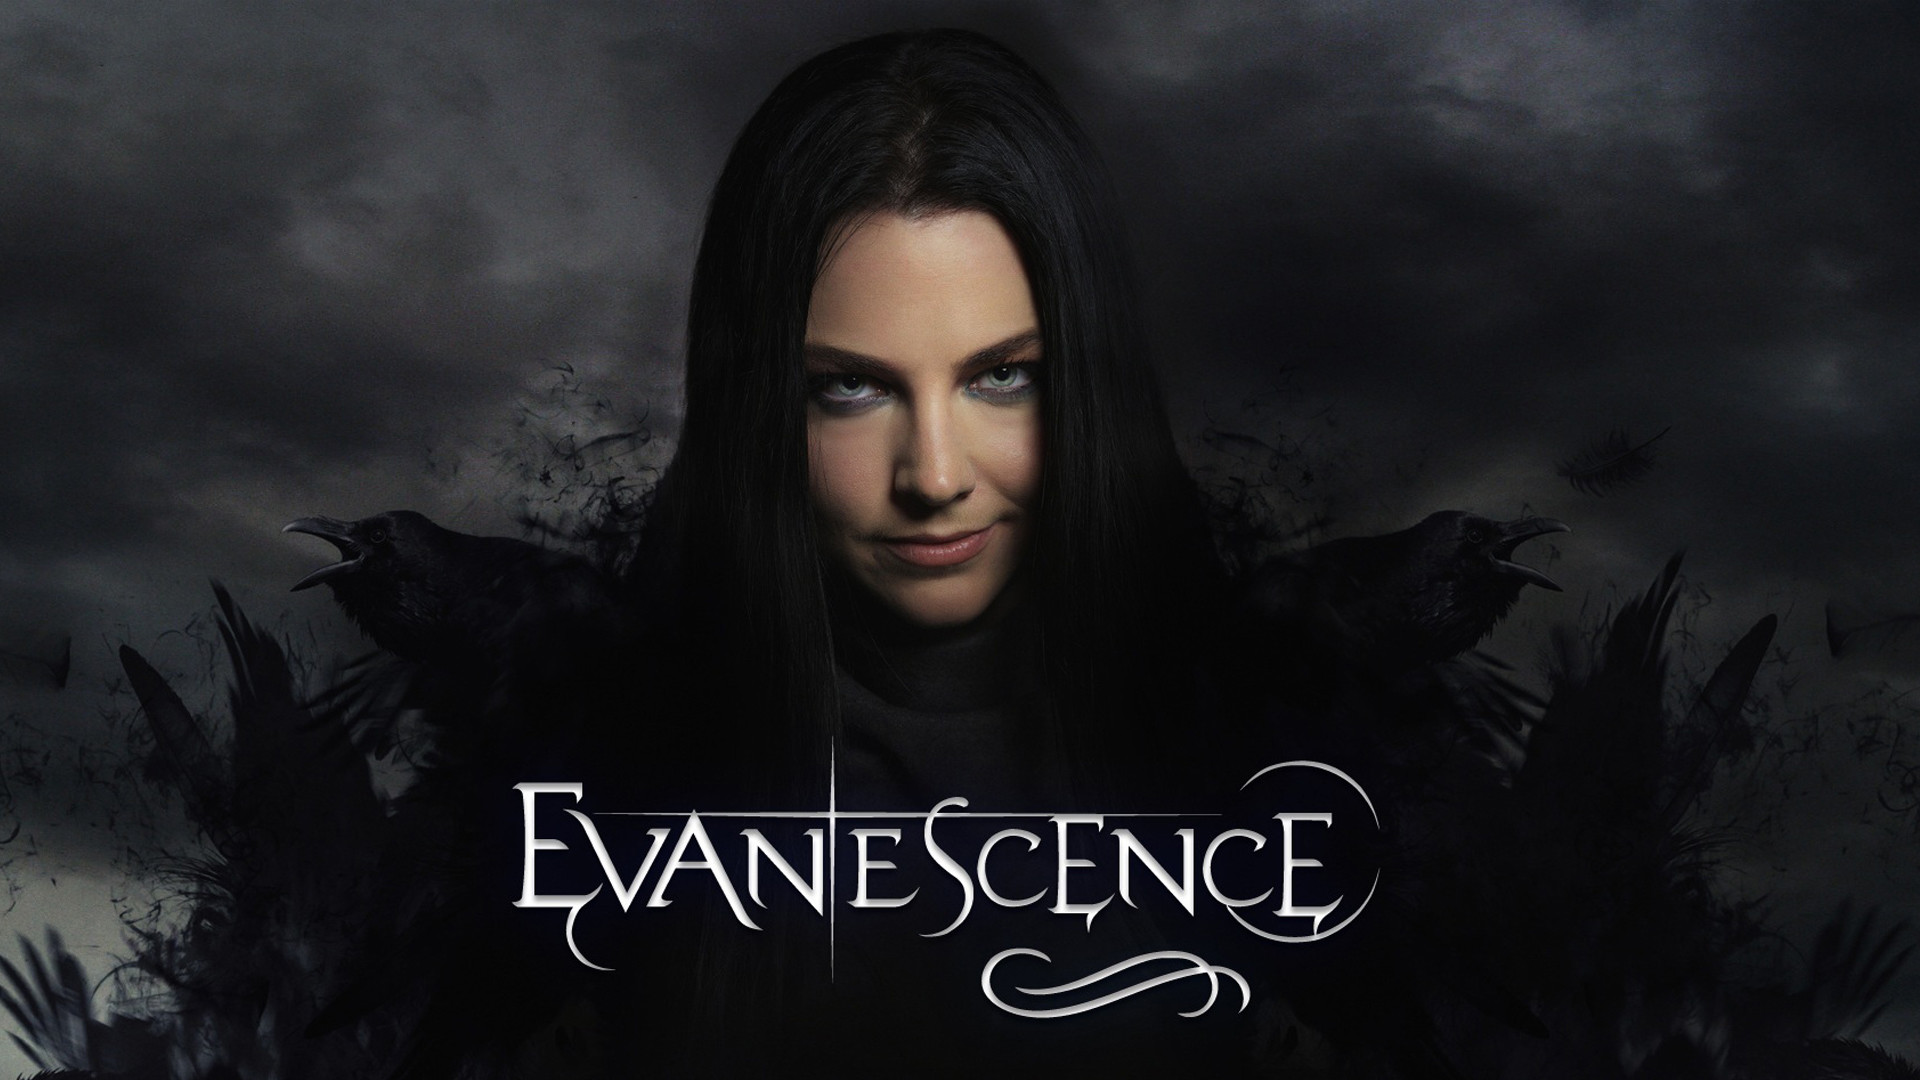 … Evanescence Pictures Evanescence Wallpaper Evanescence Wallpapers HD …